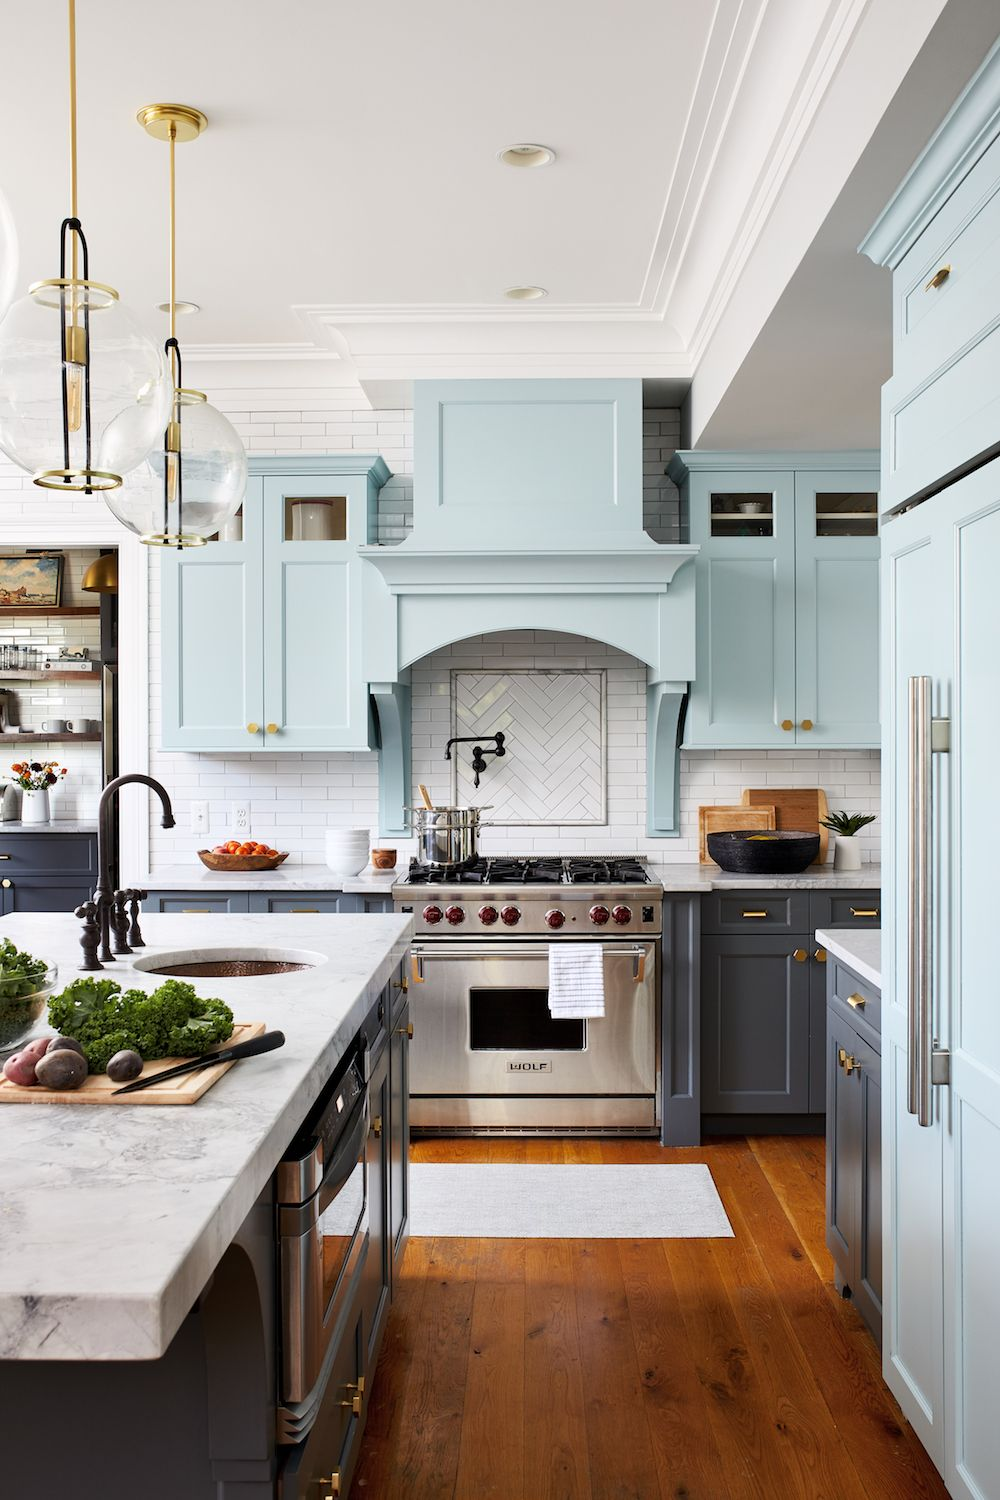 This dated family kitchen has had a fresh new look